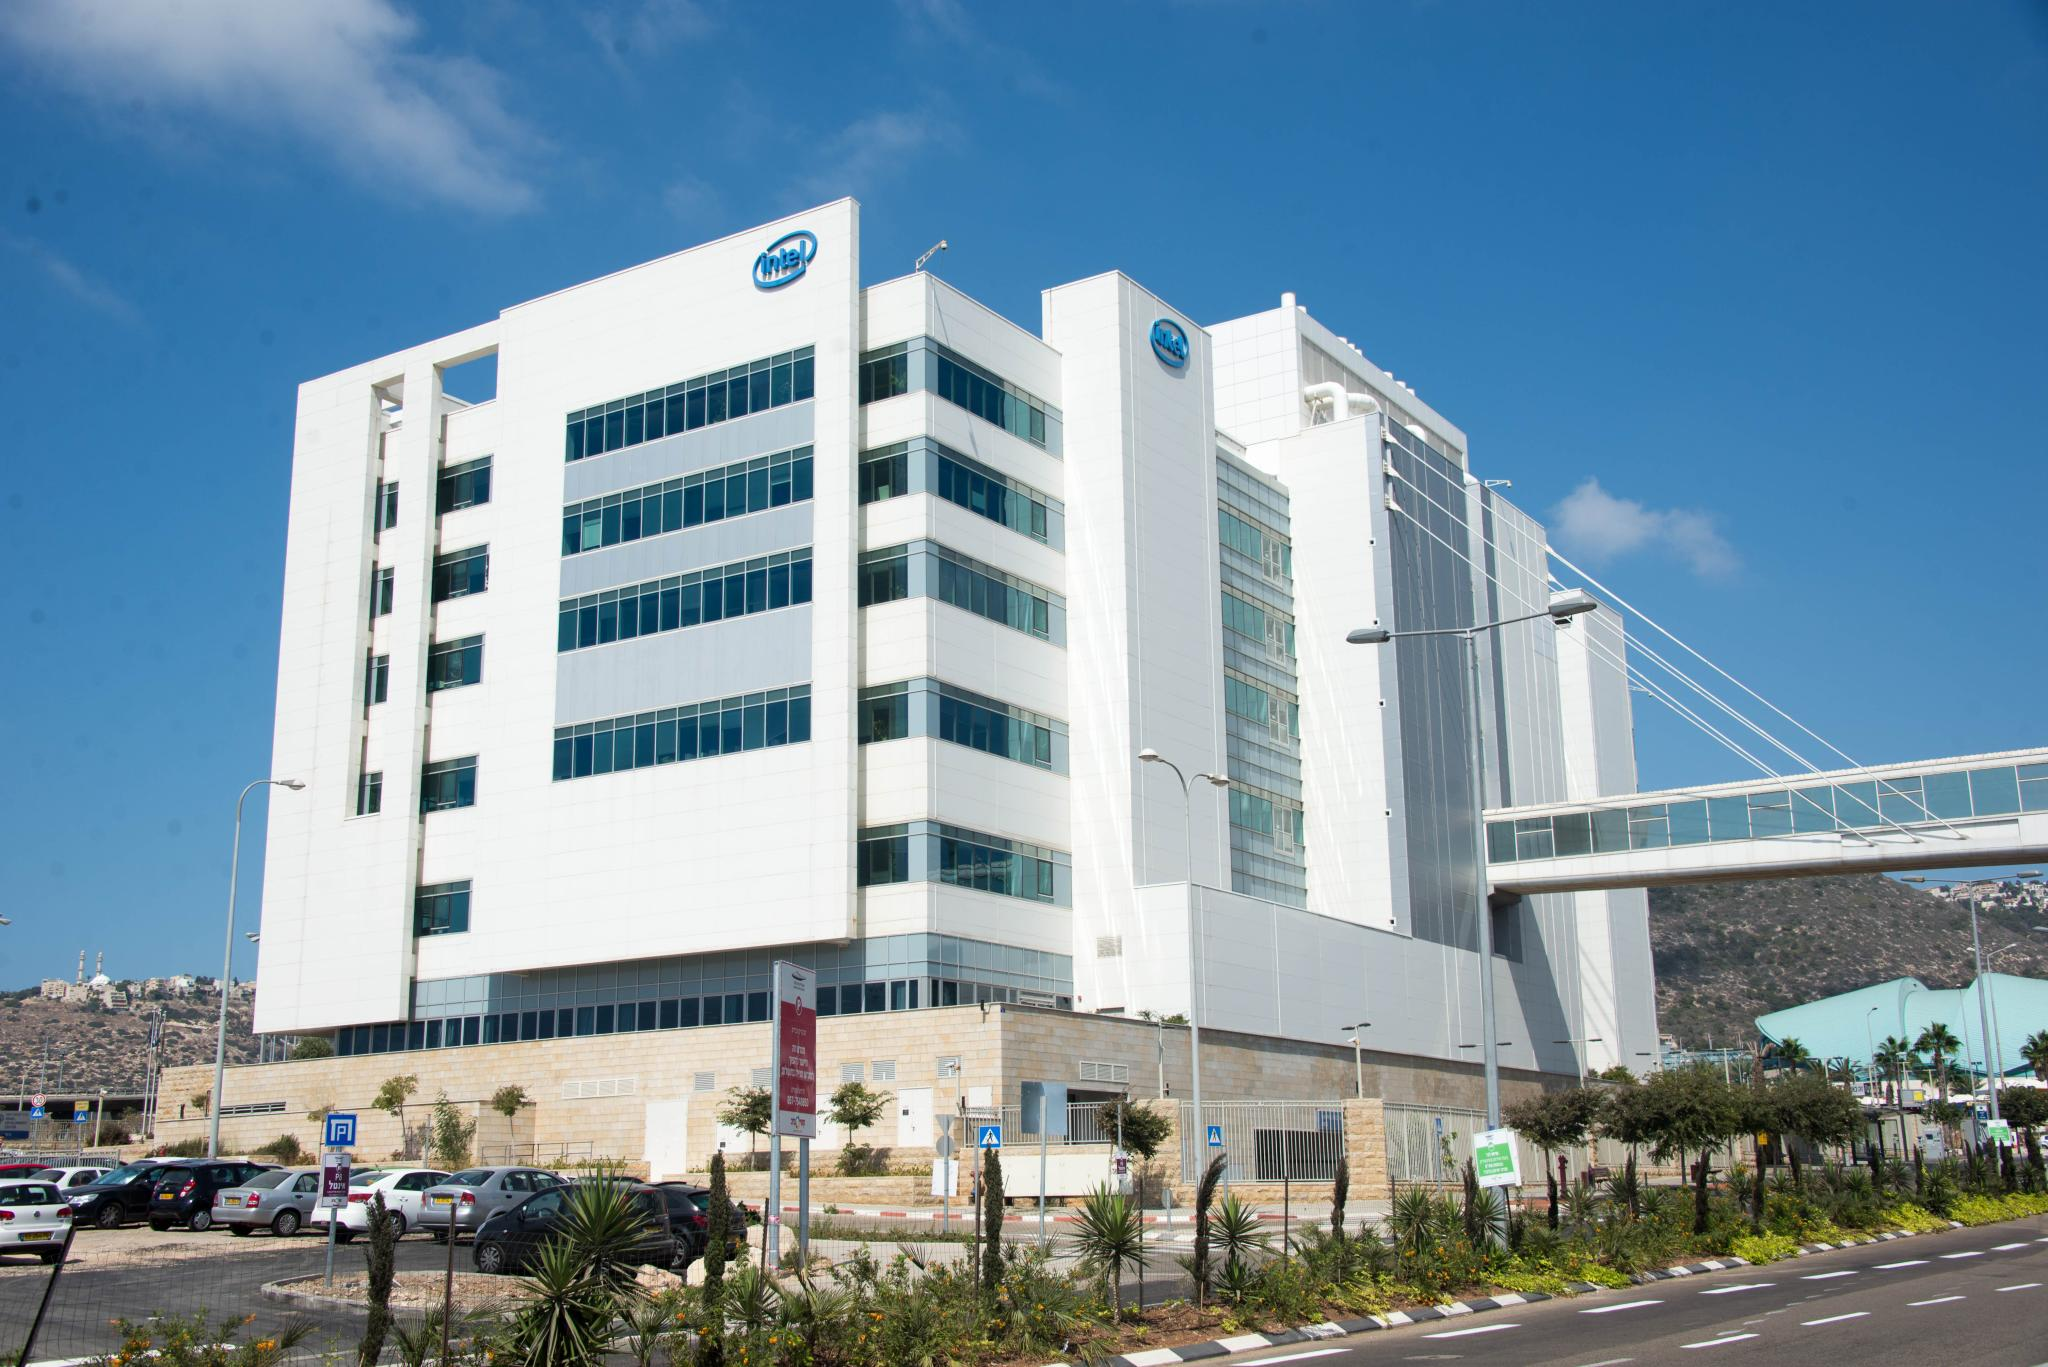 The Intel building in Haifa, Israel. Intel-Israel has sponsored a research competition for young adults. Credit: Wikimedia Commons.